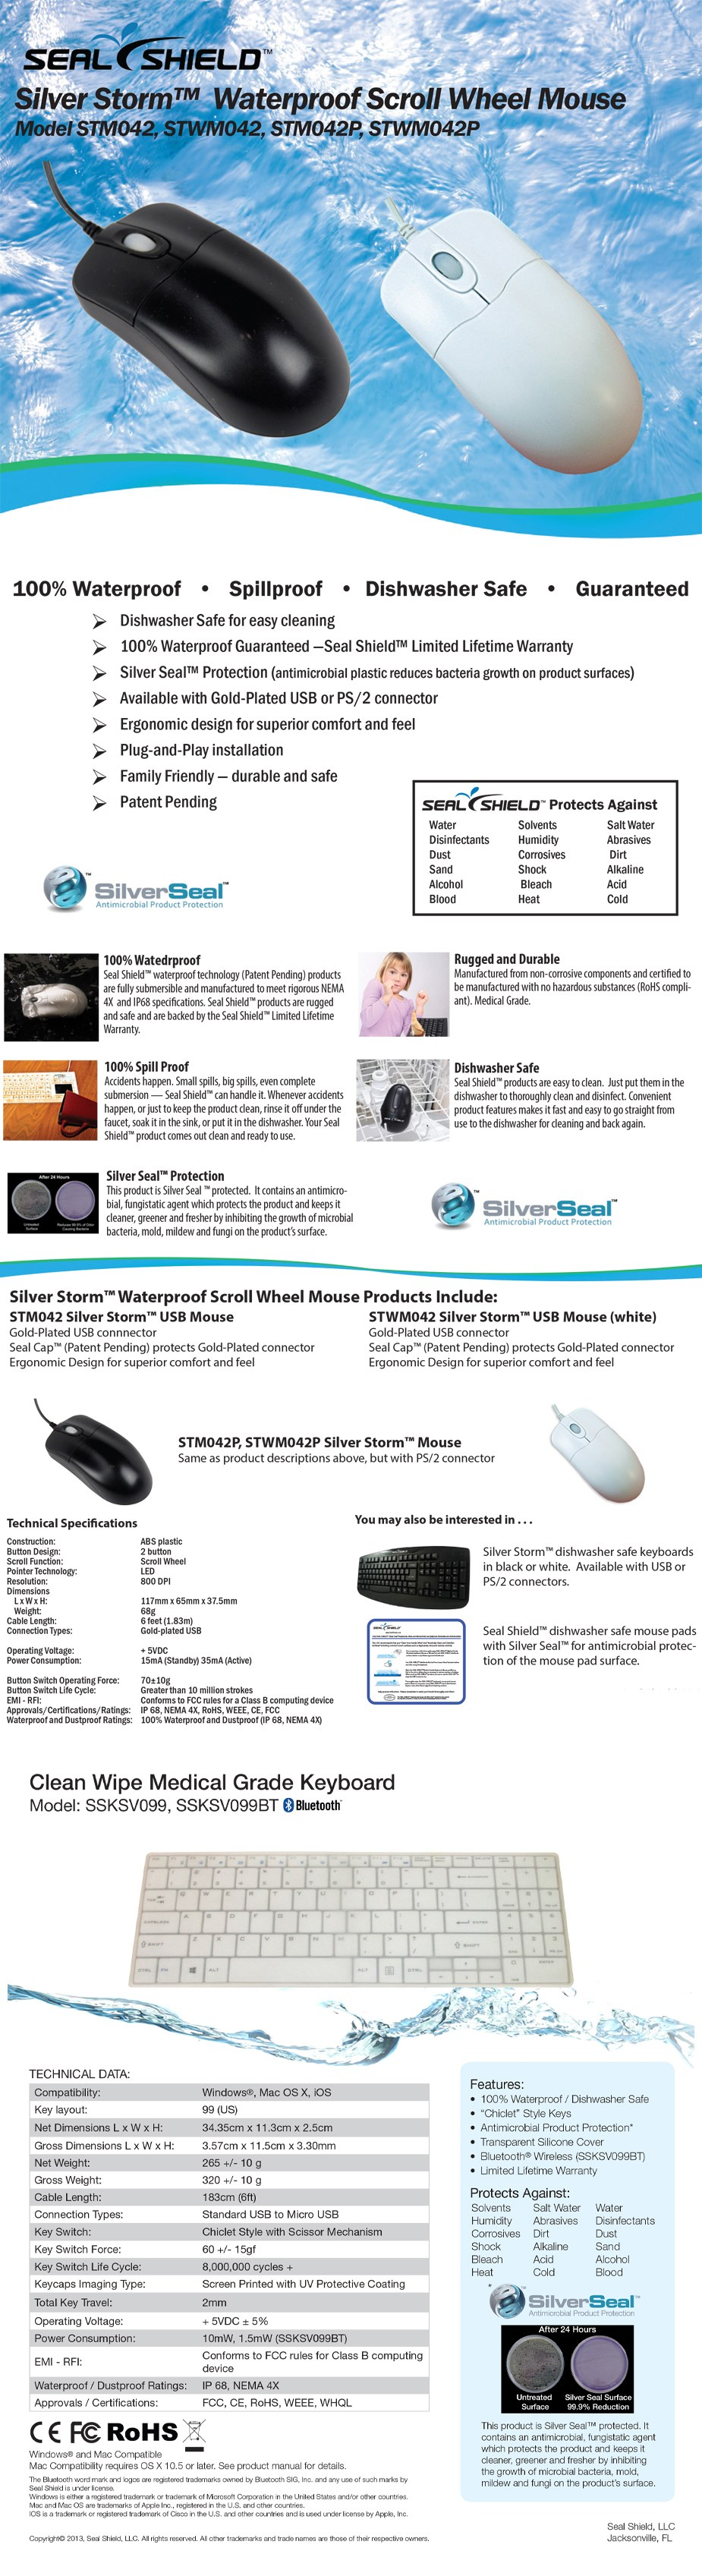 Seal Shield Clean Wipe Medical Grade Waterproof Chiclet Keyboard and Mouse Combo - Overview 1